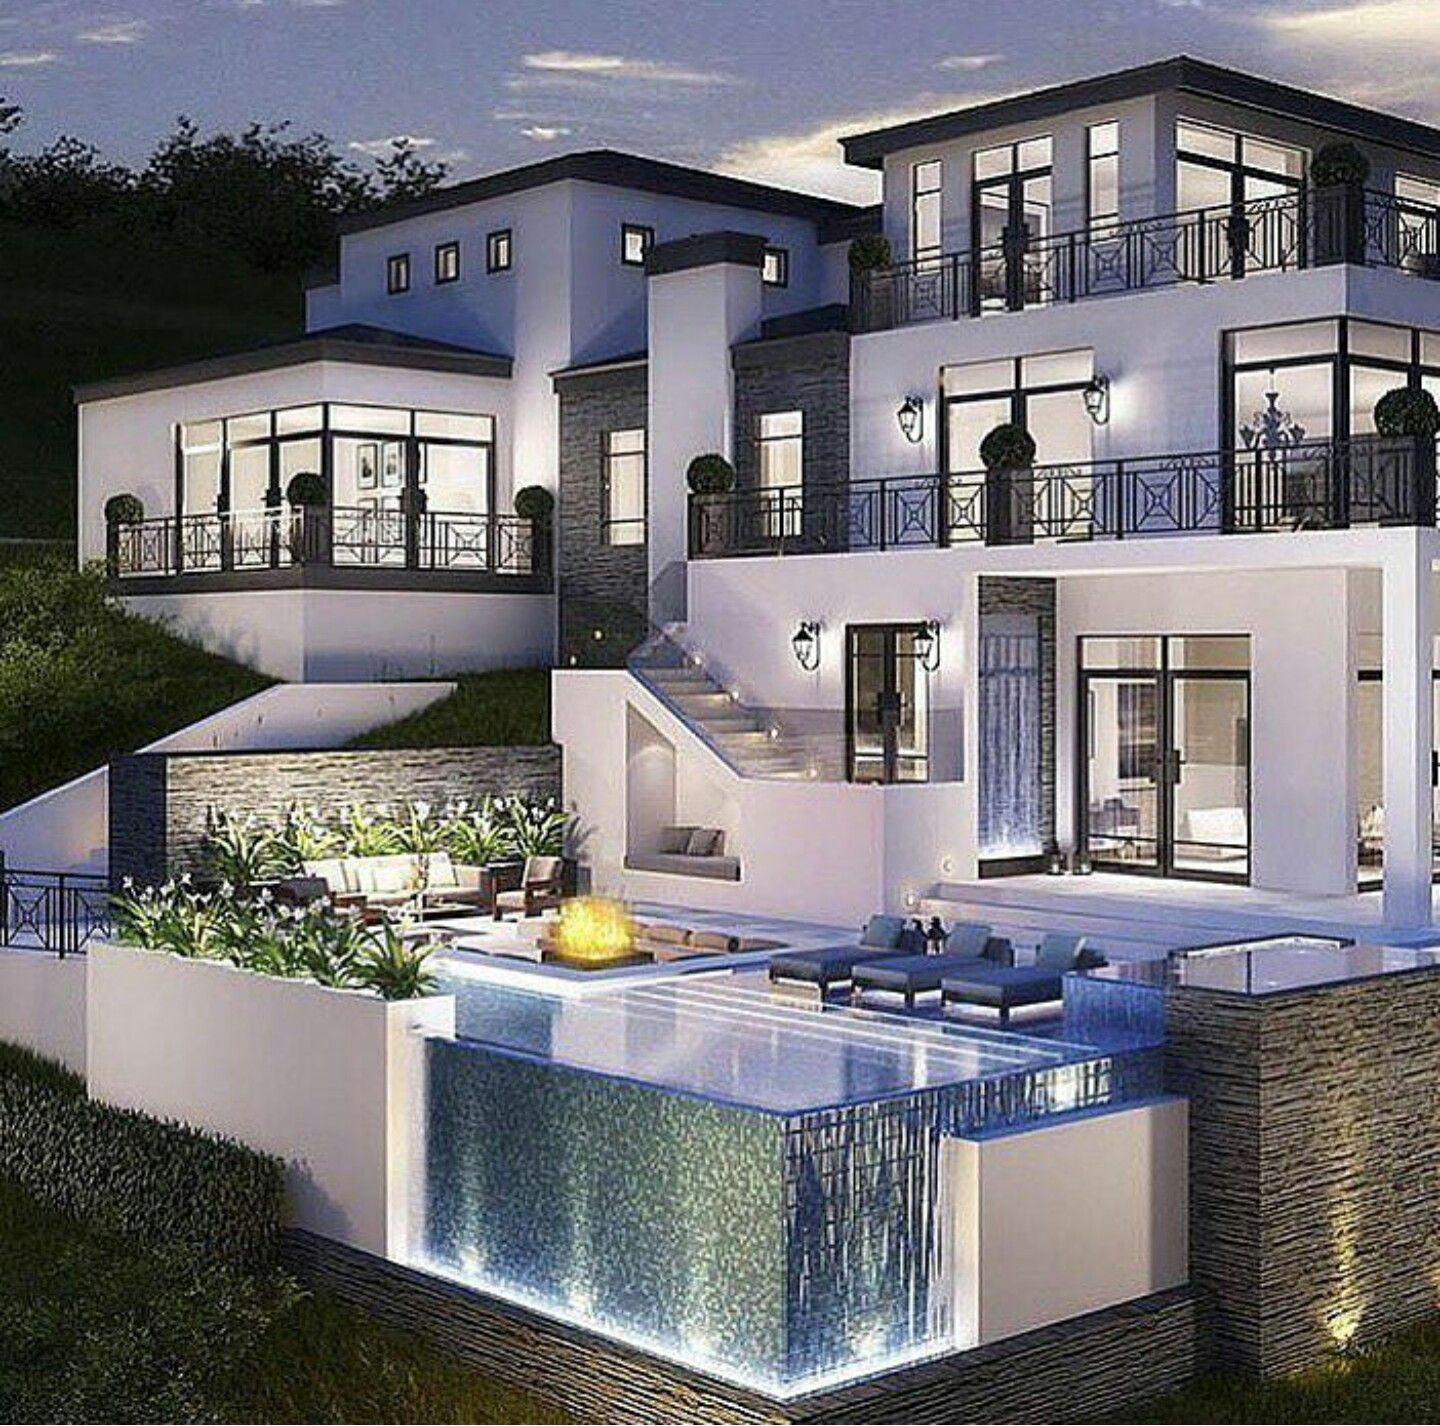 Amazing Los Angeles Hollywood Hills Mansion with Infinity Edge Pool